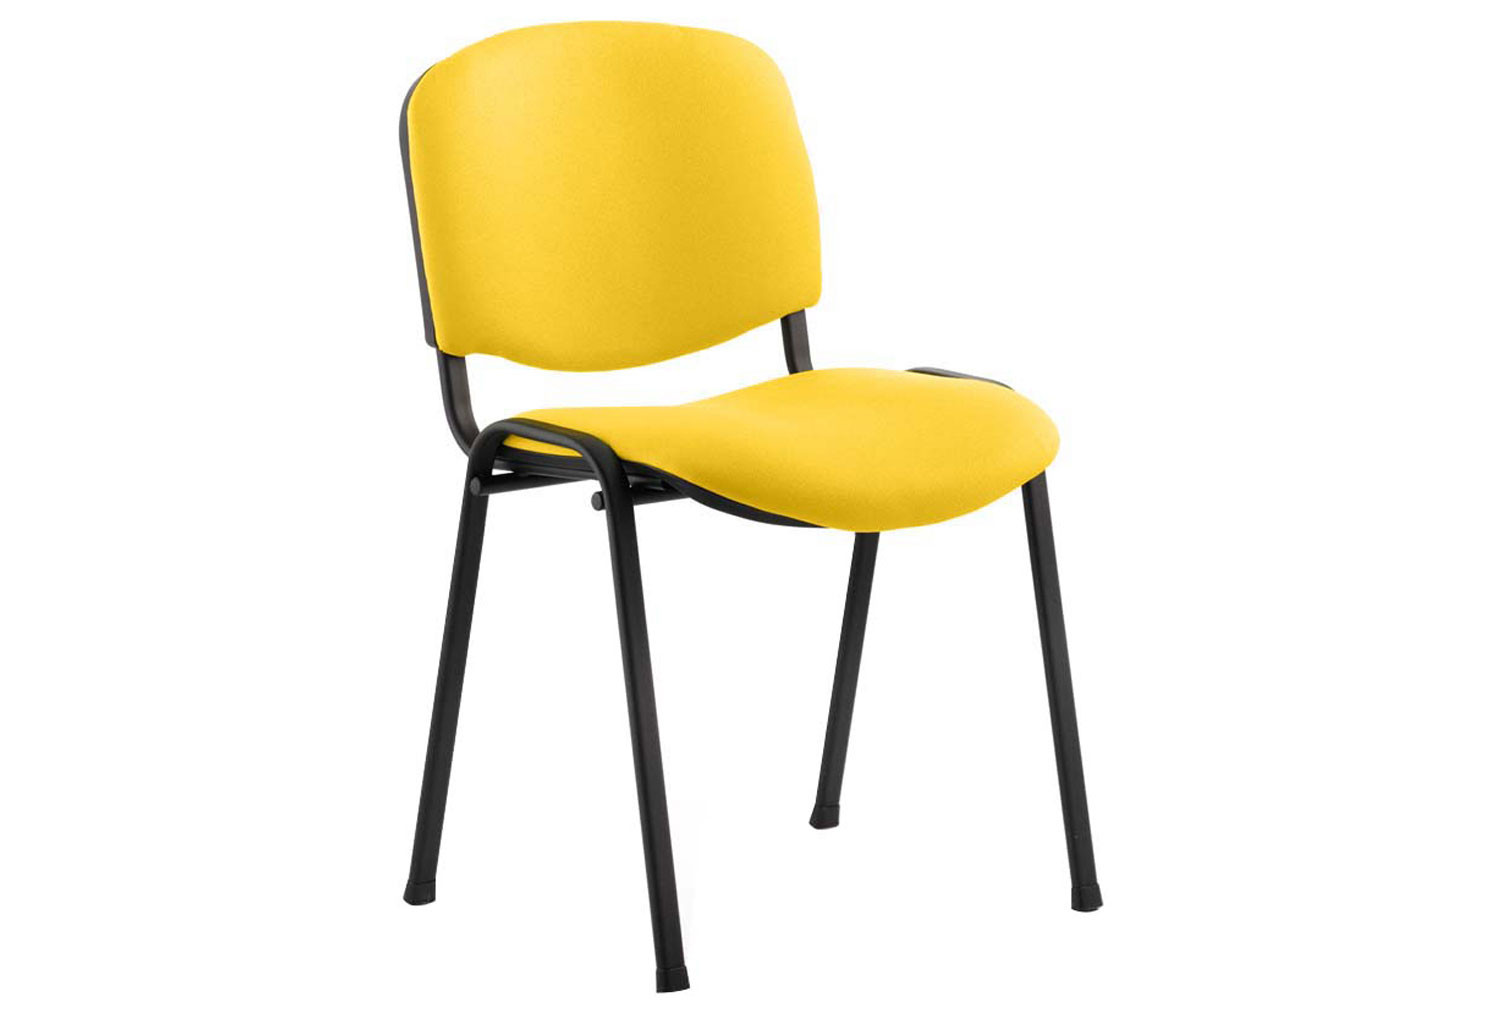 ISO Black Frame Conference Chair (Senna Yellow)